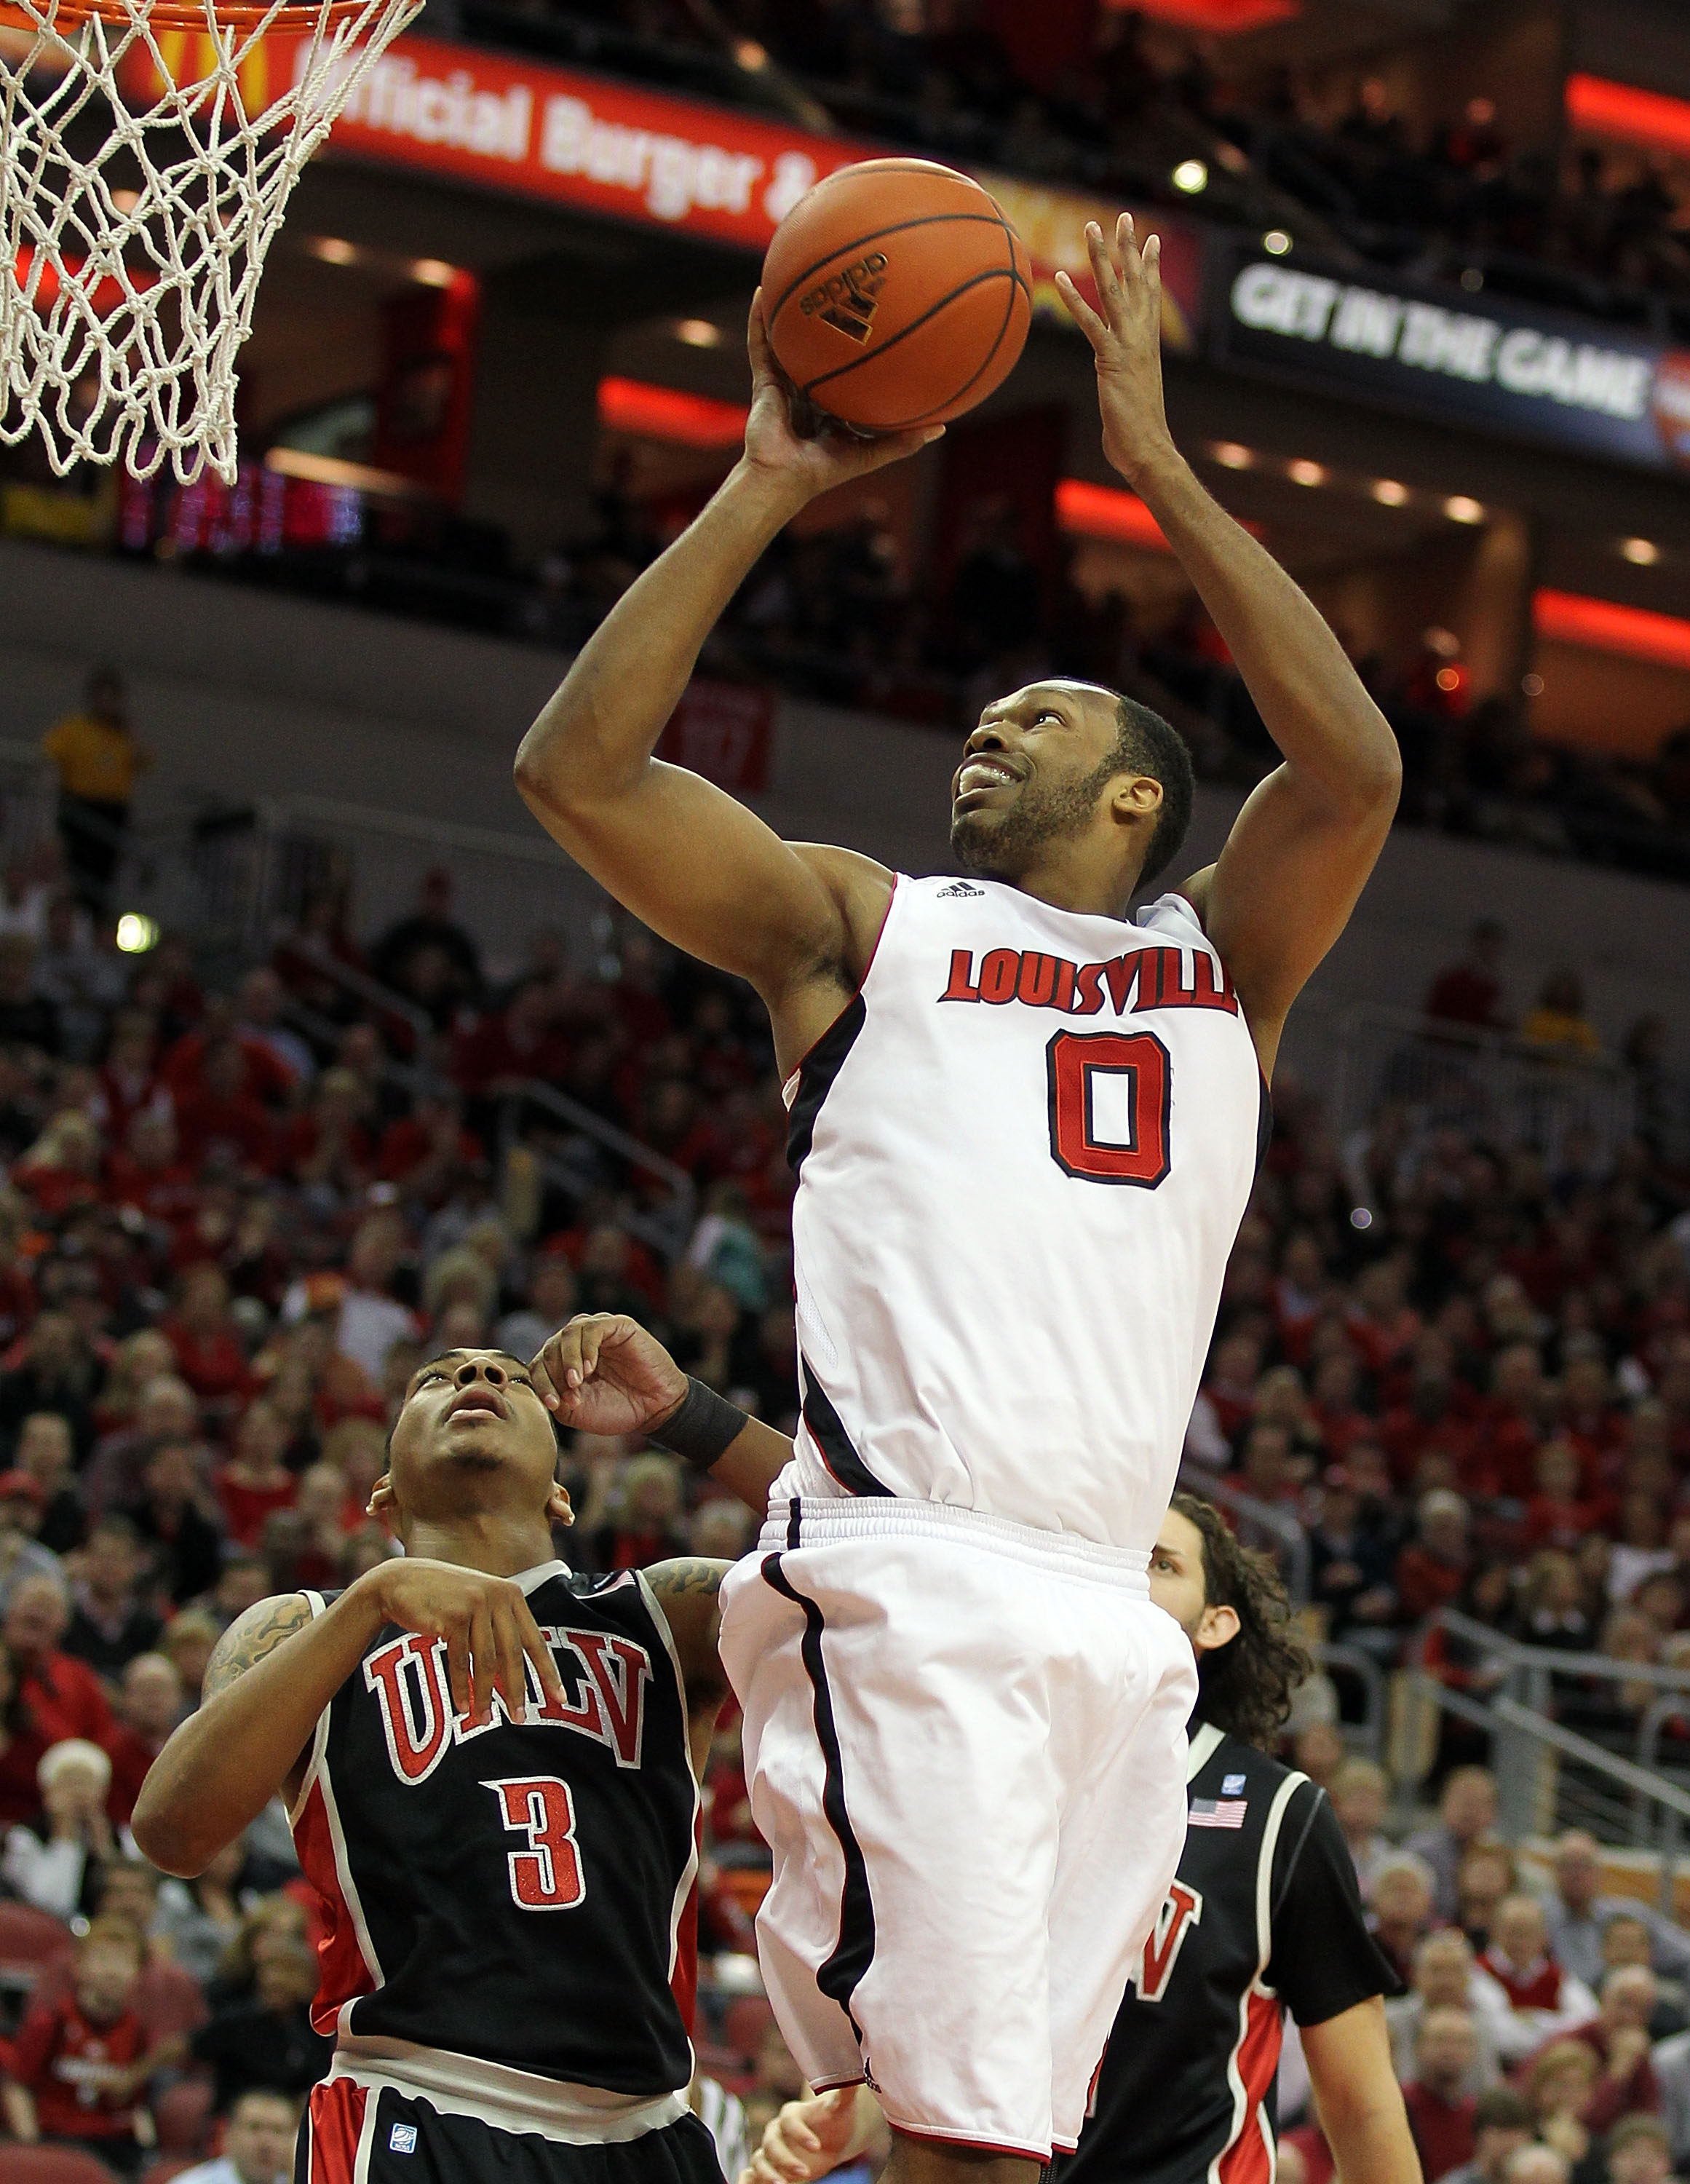 LOUISVILLE, KY - DECEMBER 11:  George Goode#0 of the Louisville Cardinals shoots the ball during the game against the UNLV Runnin' Rebels at KFC YUM! Center on December 11, 2010 in Louisville, Kentucky.  (Photo by Andy Lyons/Getty Images)